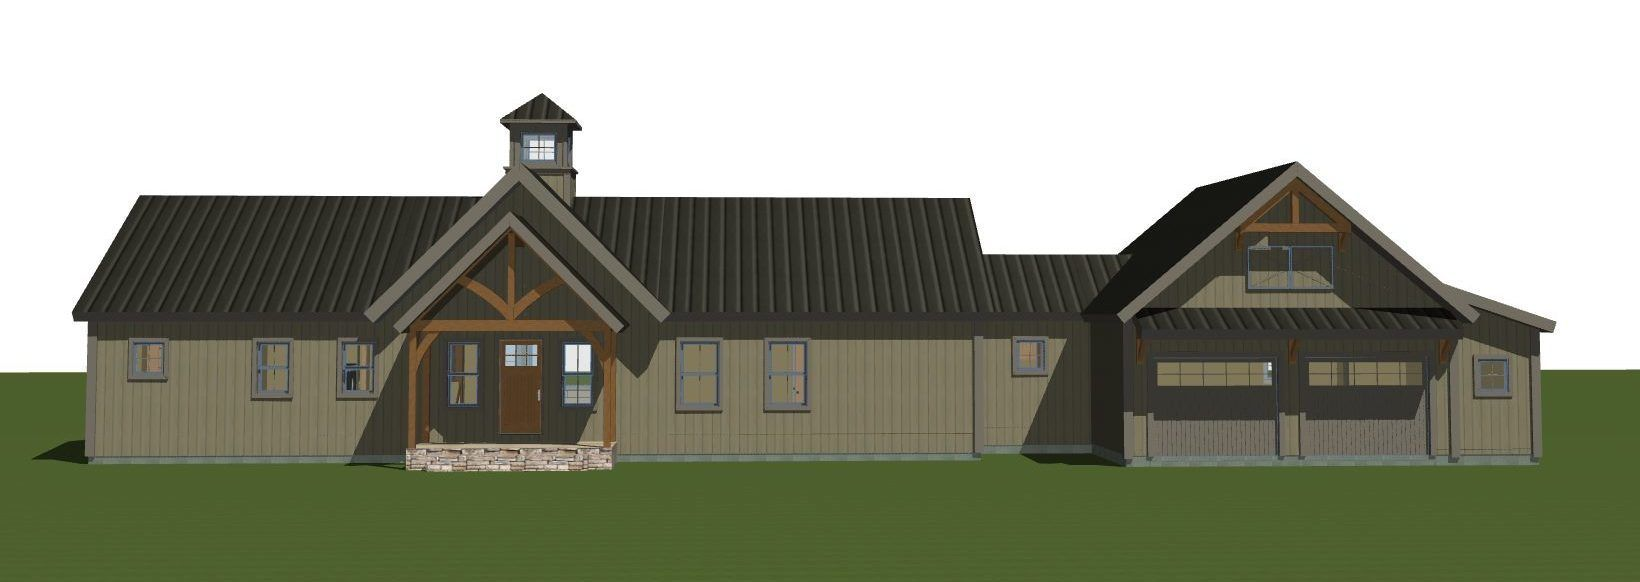 New Barn House Plans Boulder Meadows